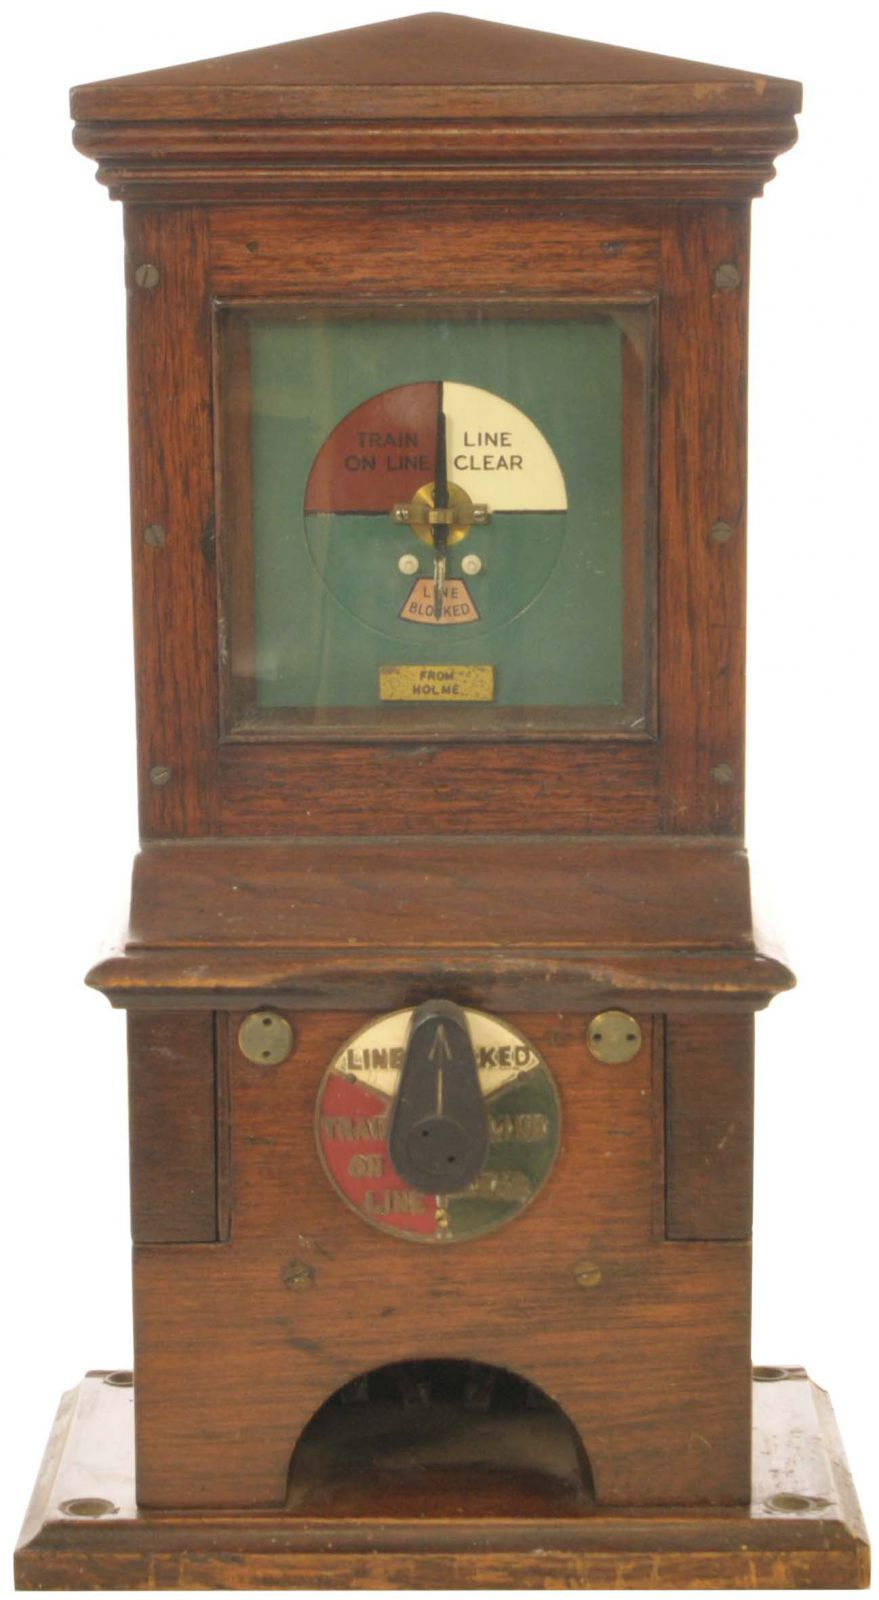 Lot 2 - Railway Signal Box Instruments, GNR Block, Holme: A Great Northern Railway block instrument with